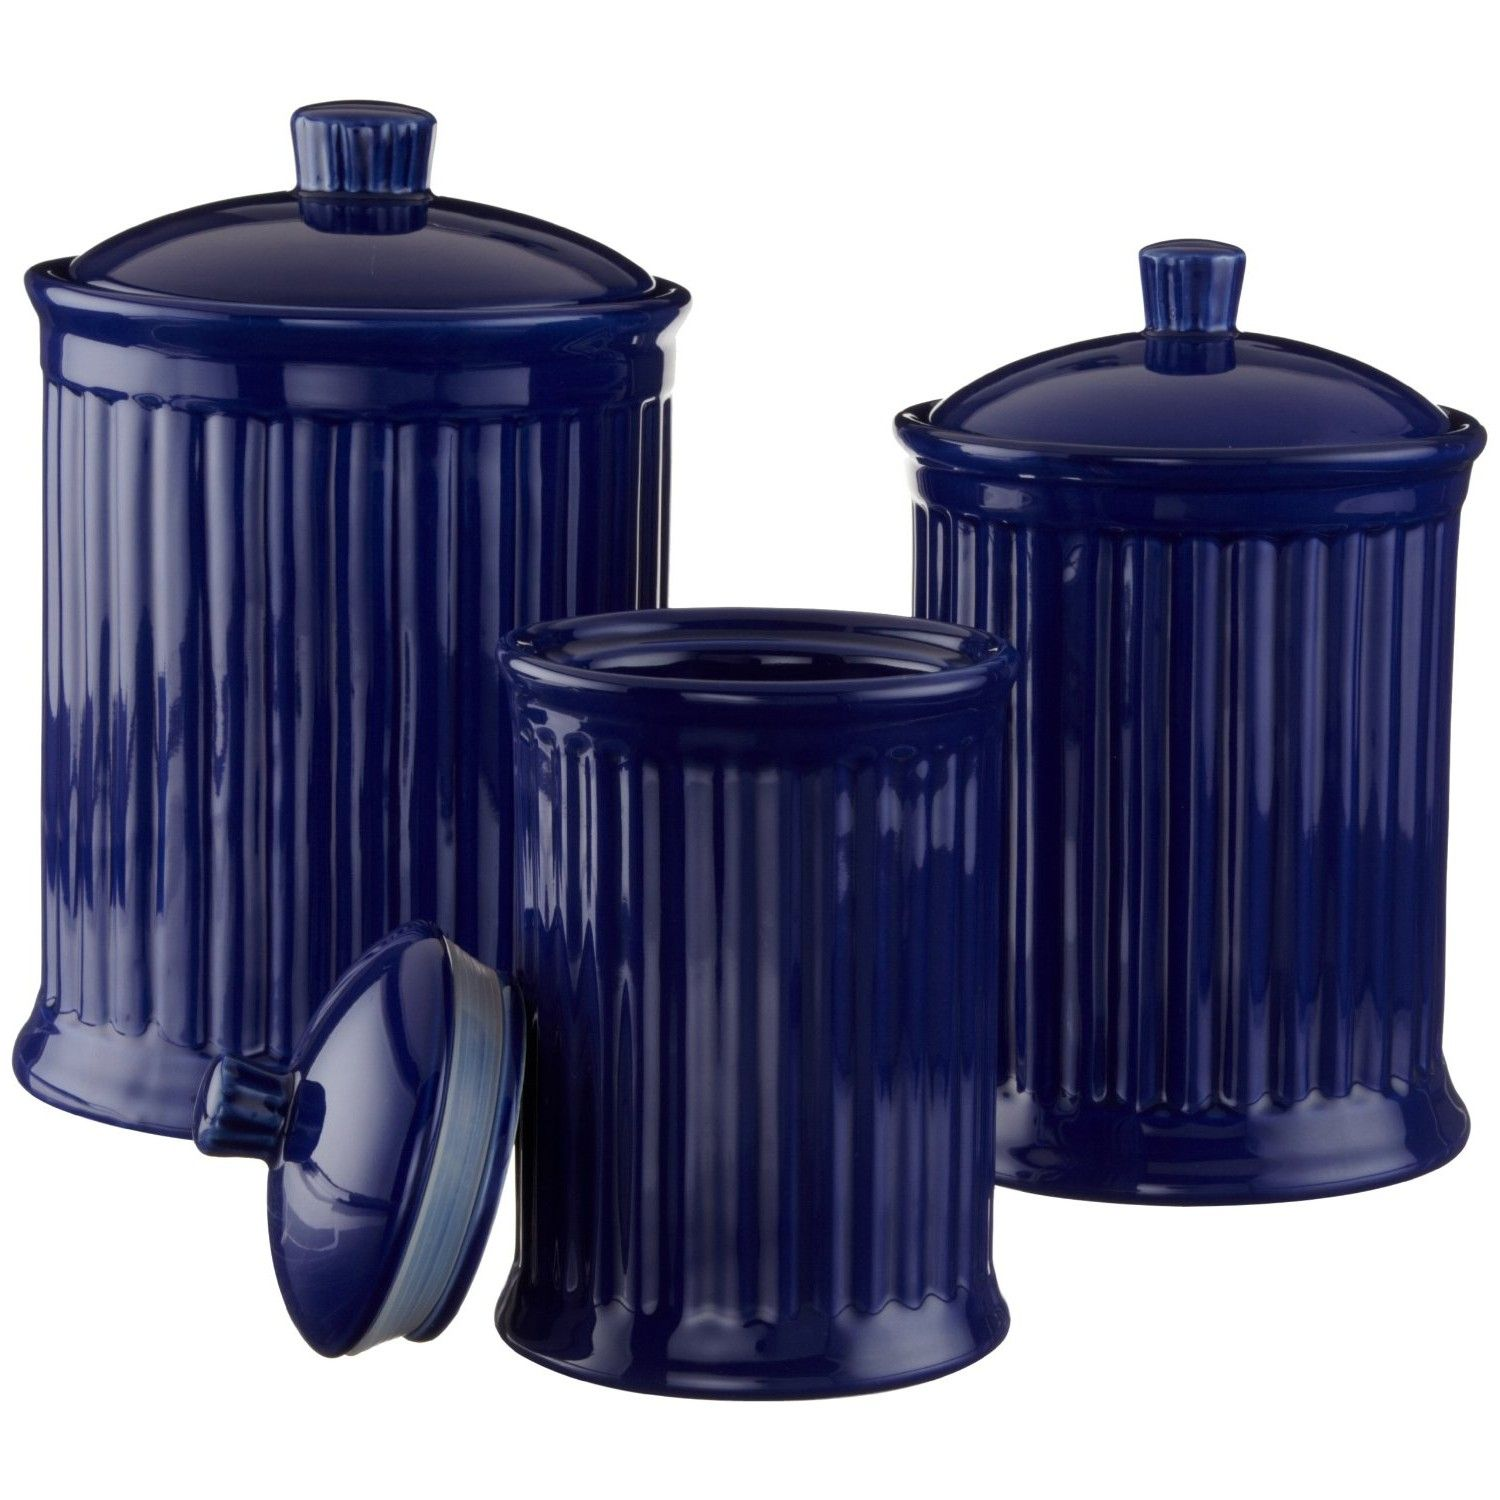 Cobalt Blue Kitchen Have A Cobalt Blue Canister Set With From Navy Blue Kitchen Accessories Navy Blue Kitchen Blue Kitchen Accessories Cobalt Blue Kitchens